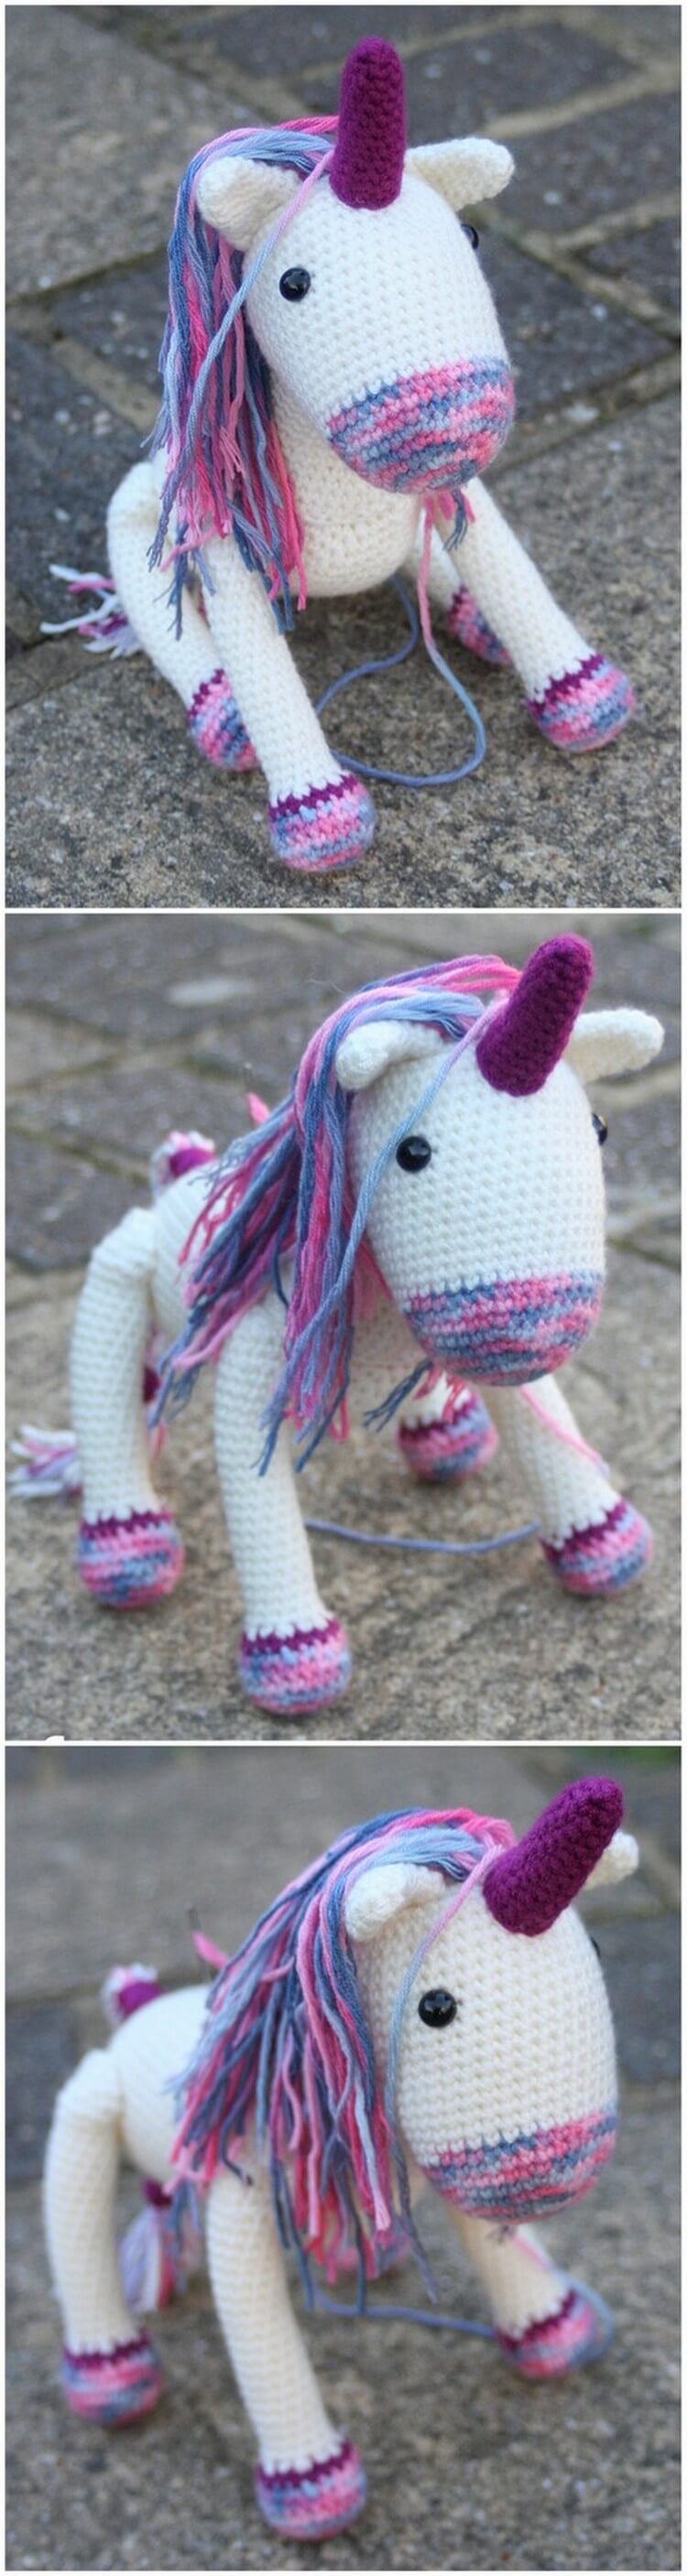 Crochet Unicorn Pattern (35)